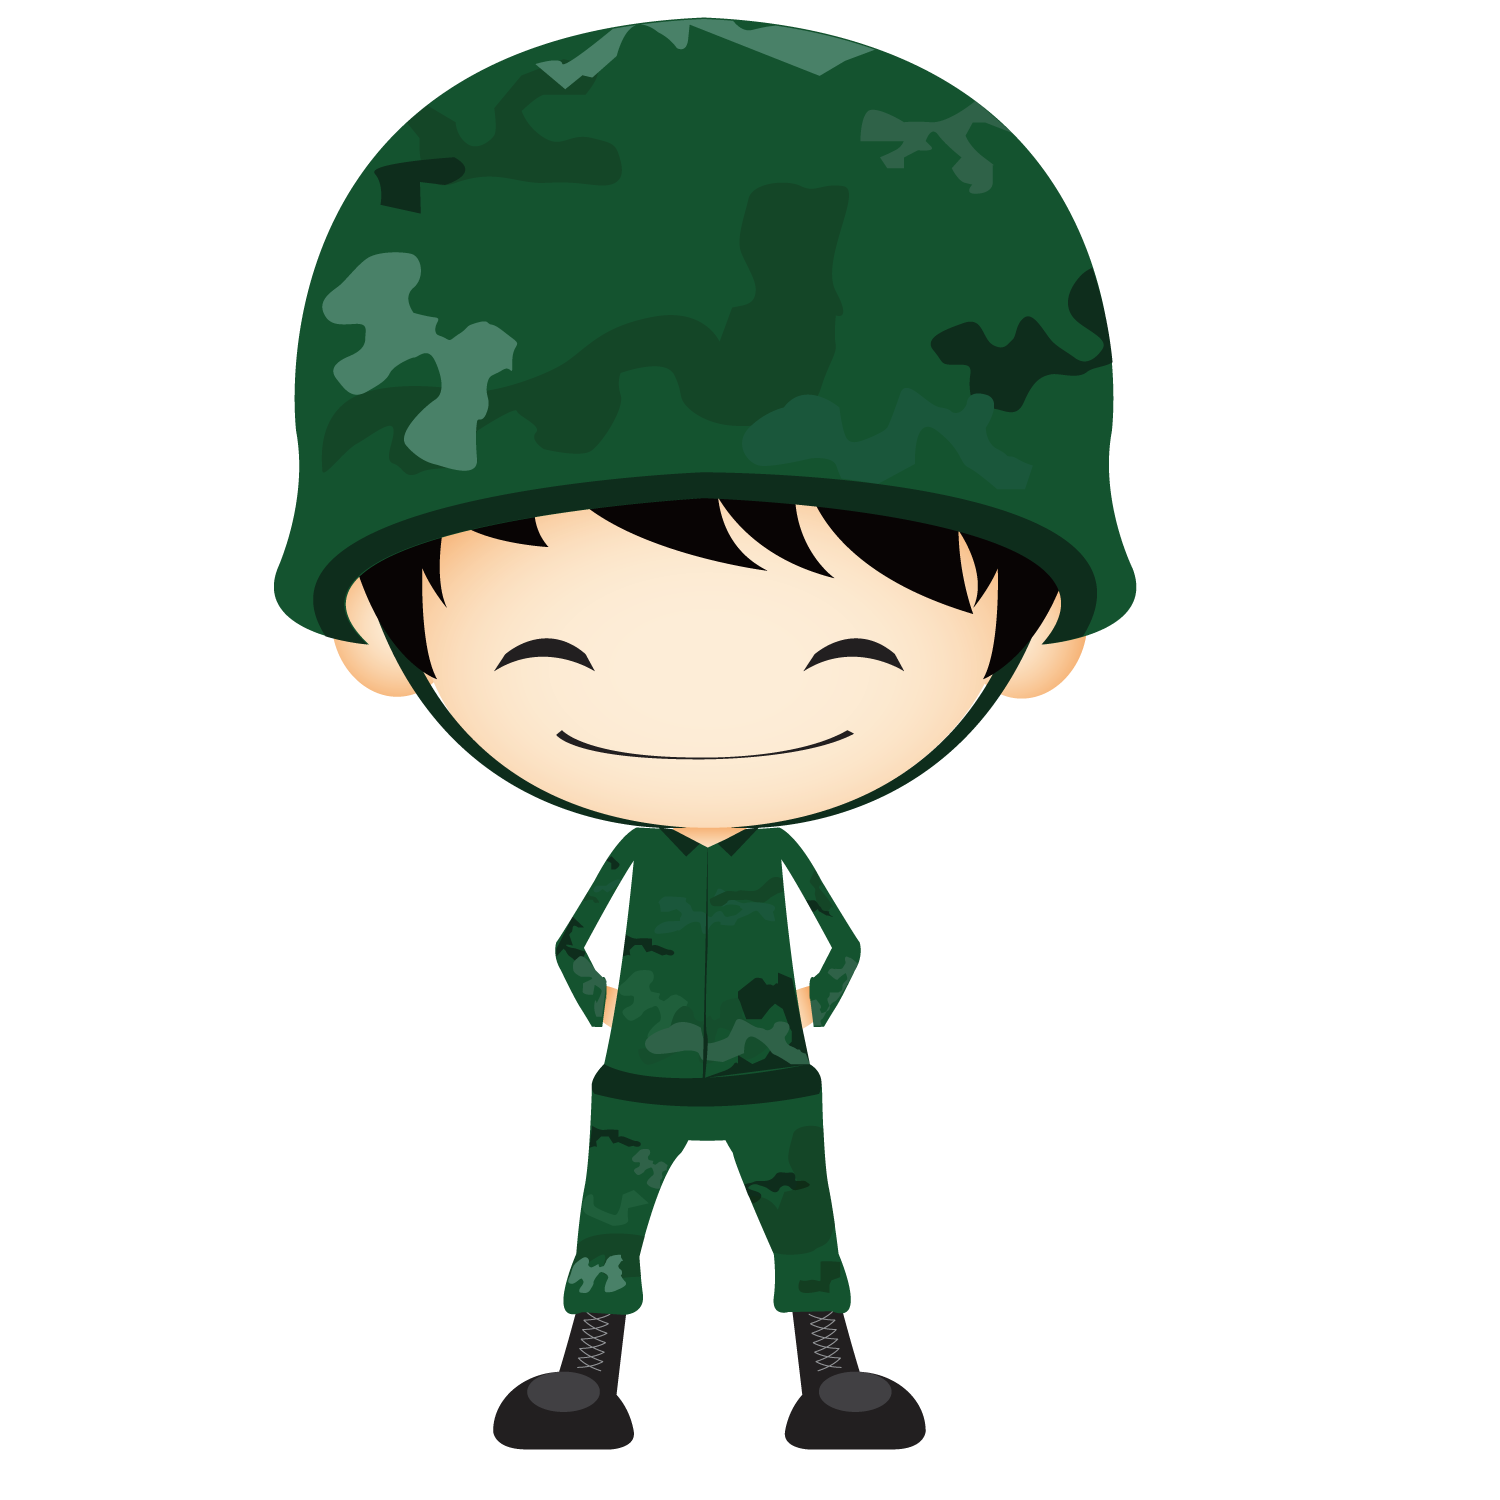 Soldiers clipart soldier canadian, Soldiers soldier canadian.